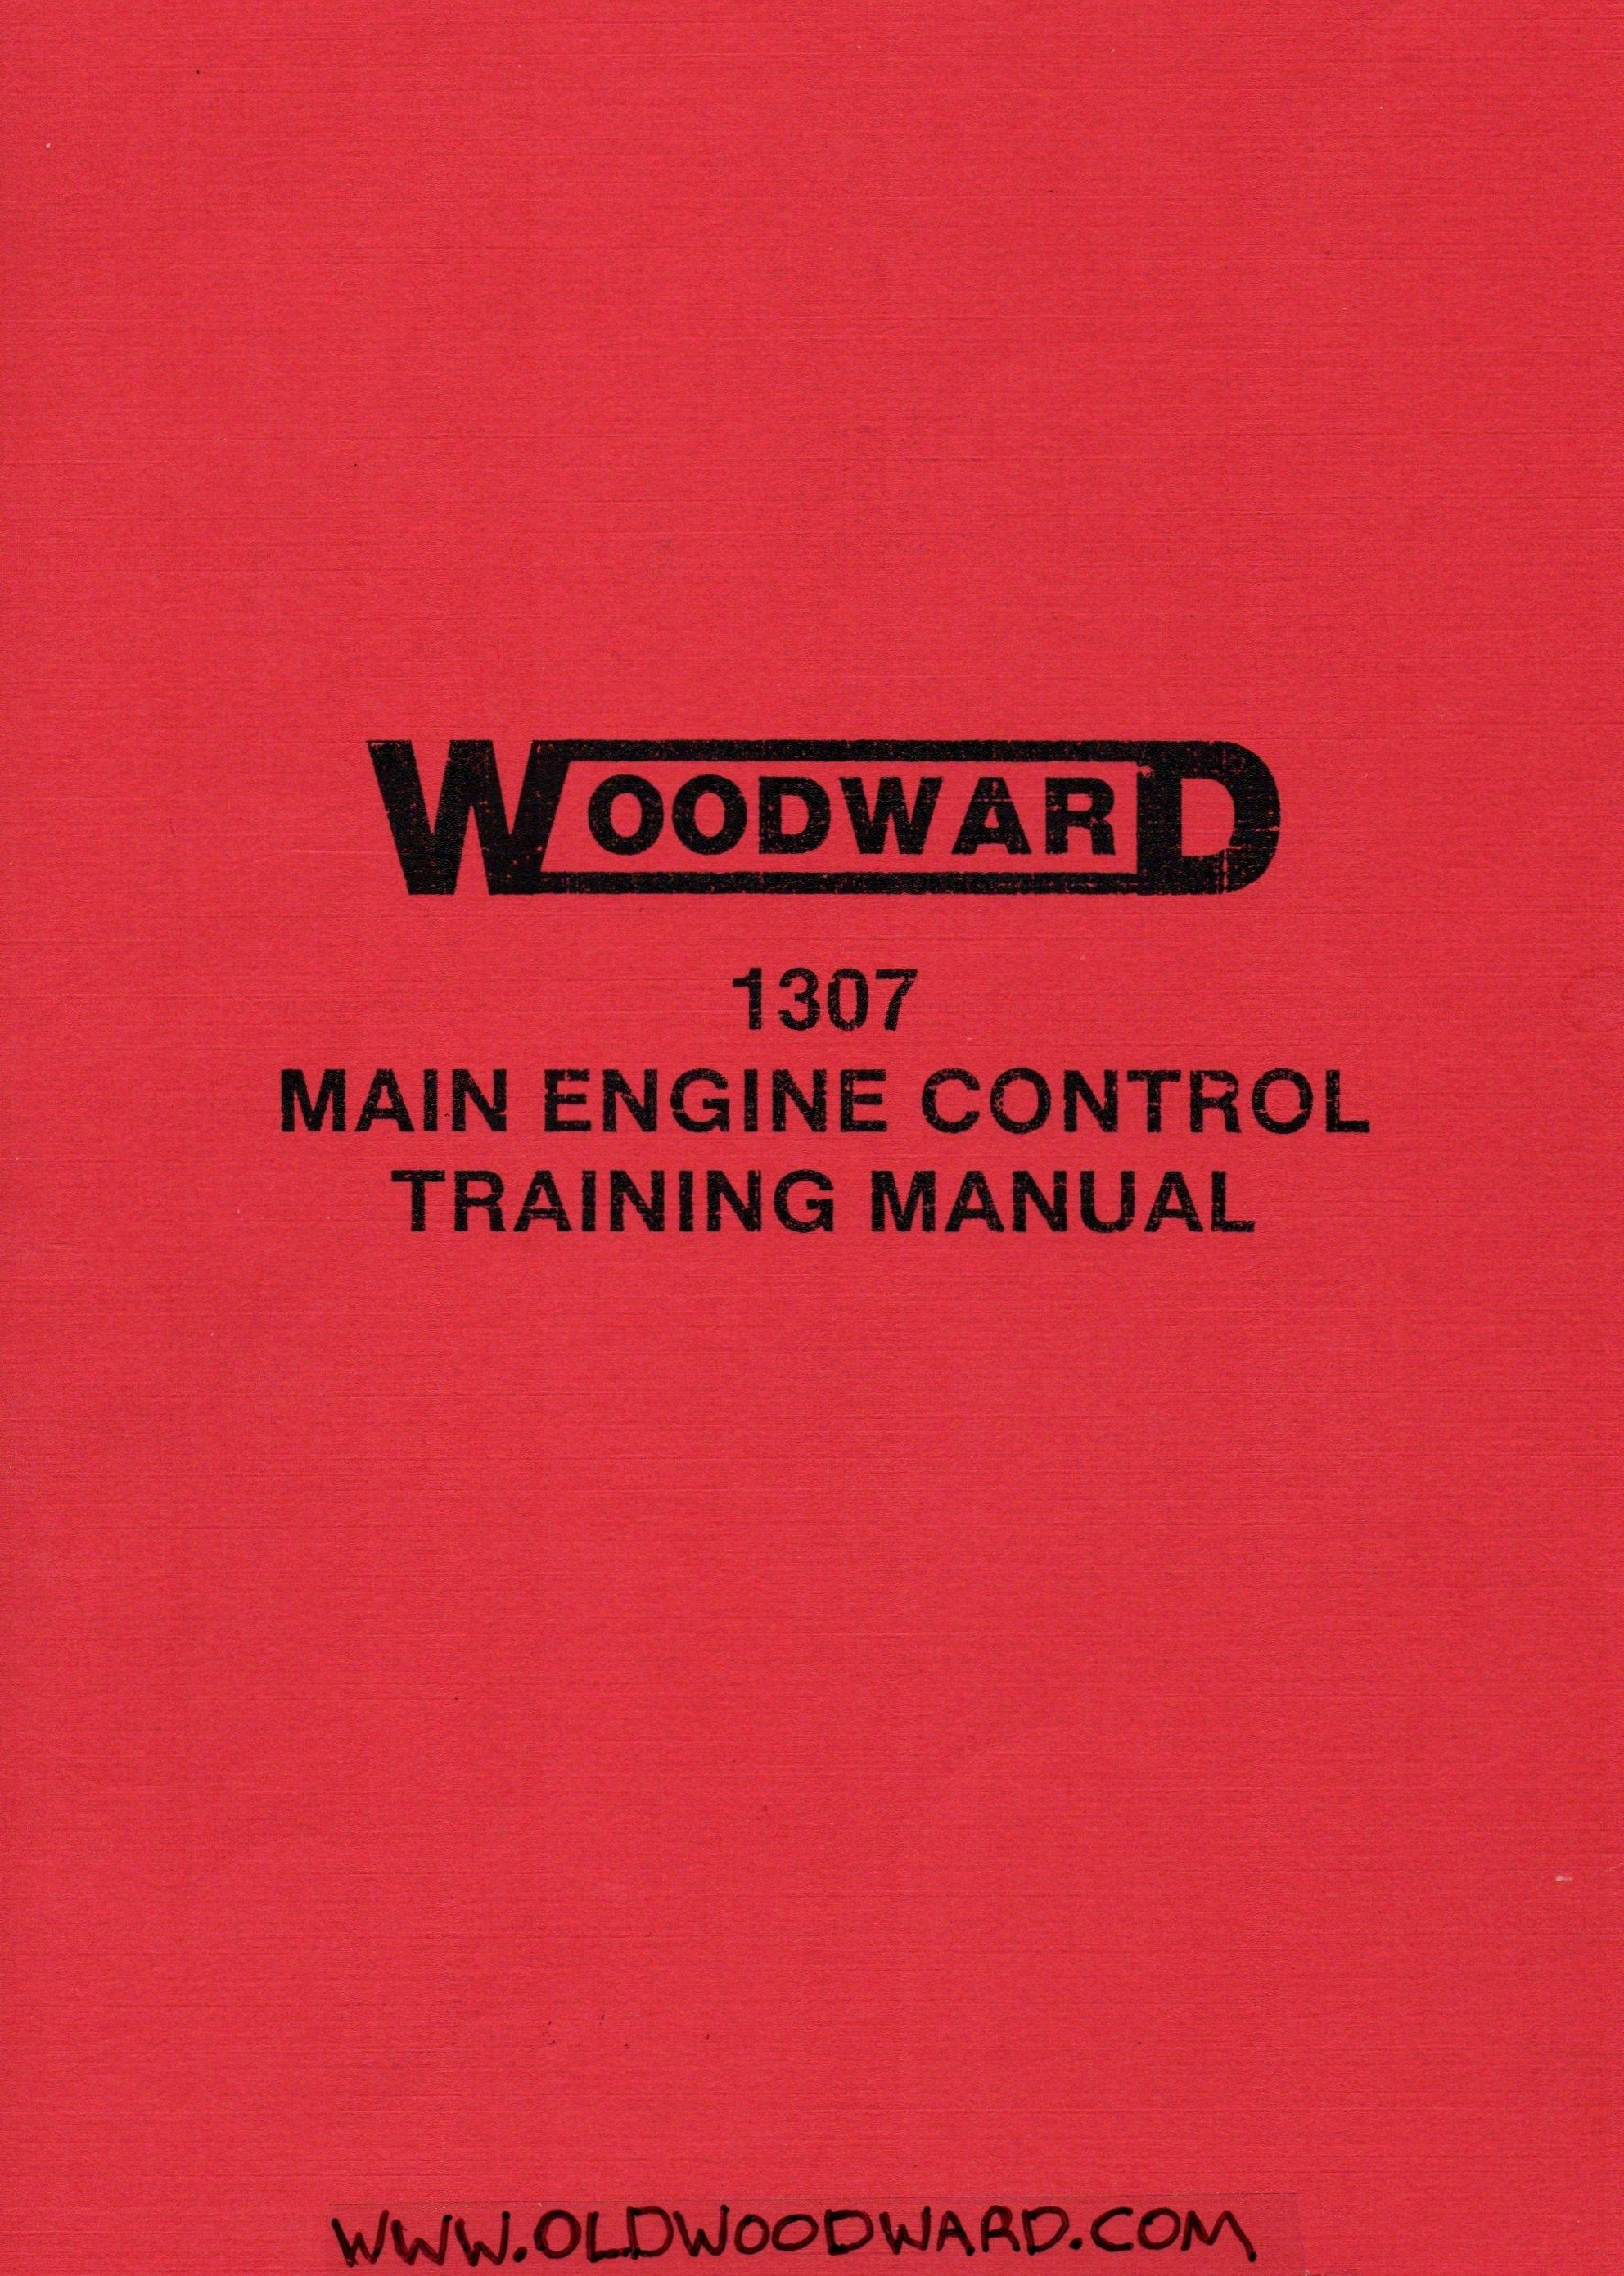 e of the first Woodward Aircraft Main Engine Controls for gas